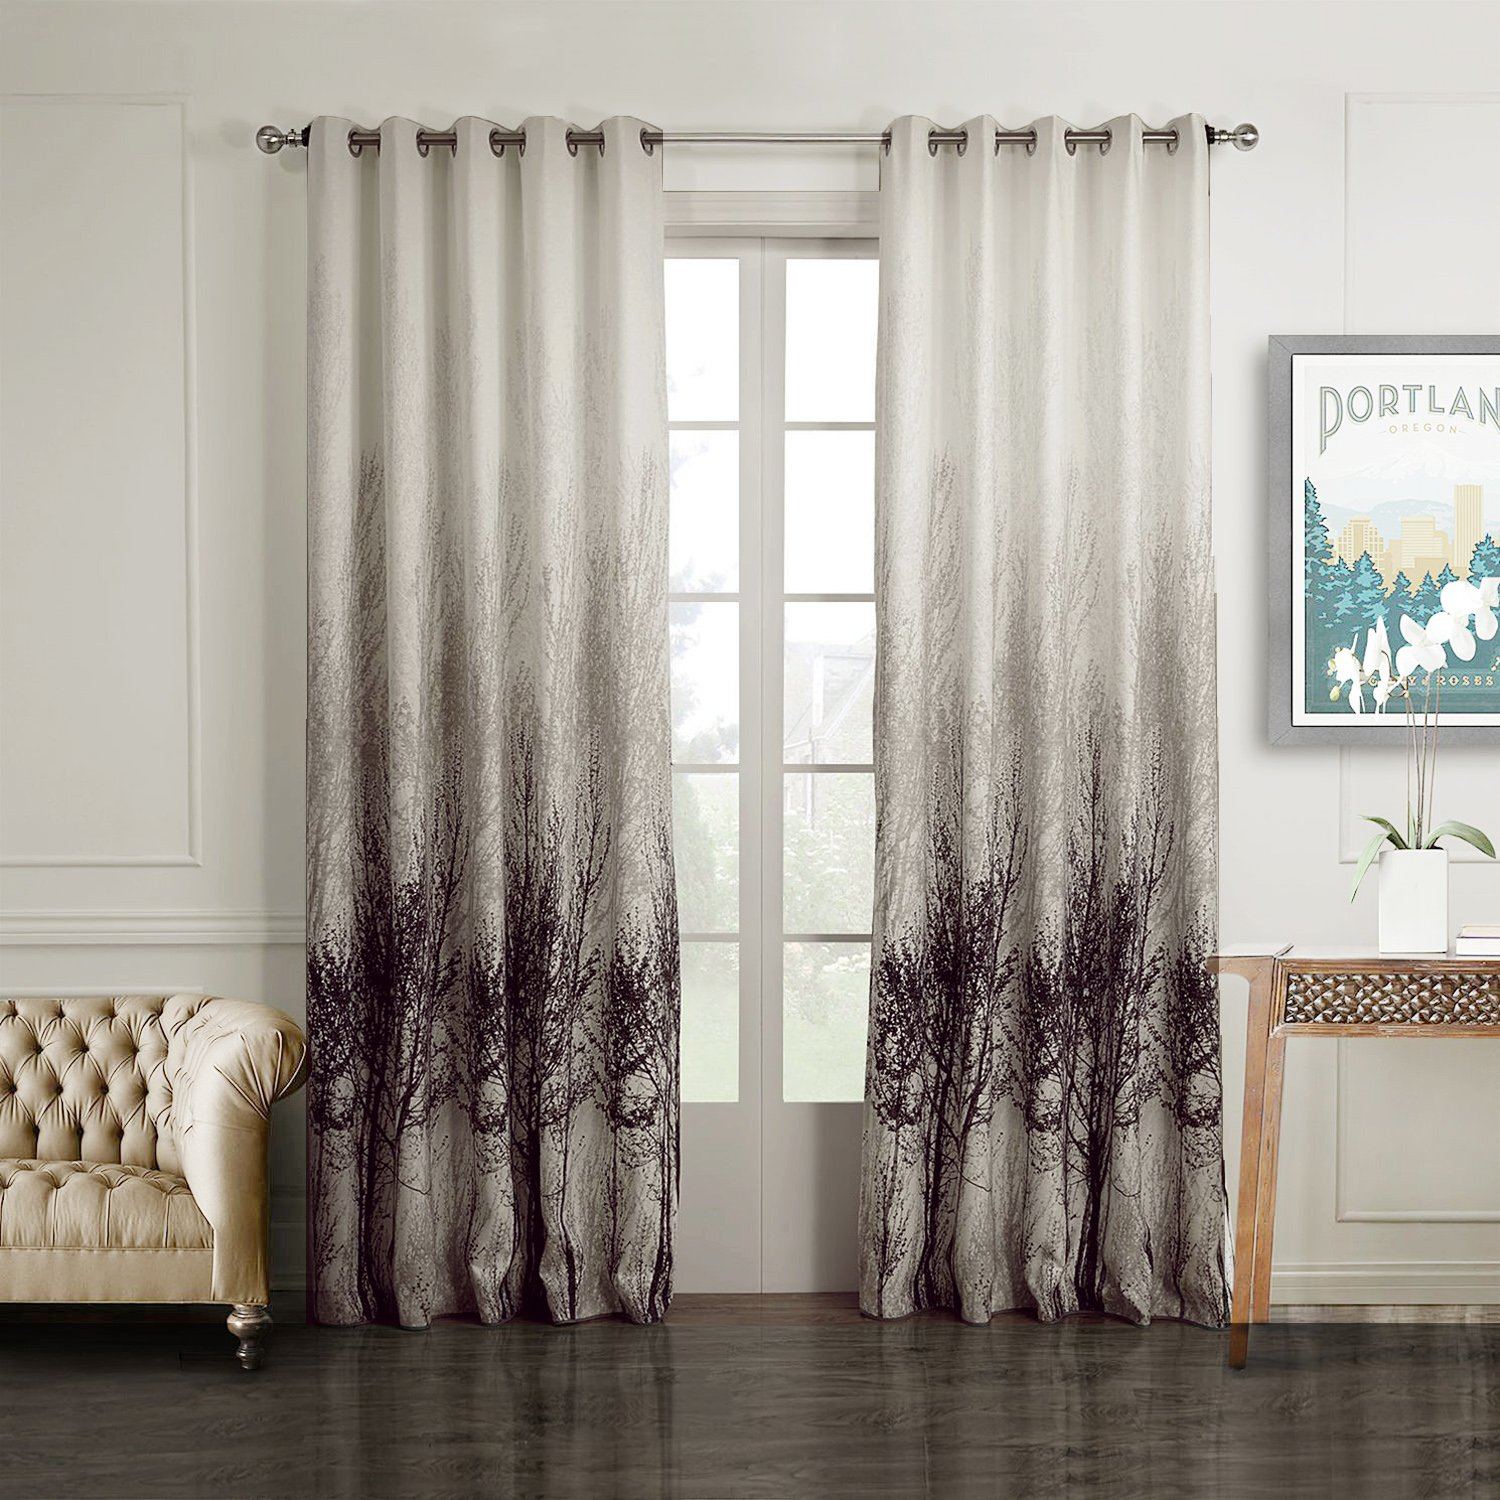 Ink Tree Curtains for Living Room - Anady 2 Panel Watercolor Decro Curtains  Modern Design Drapes Grommet 42W 84L